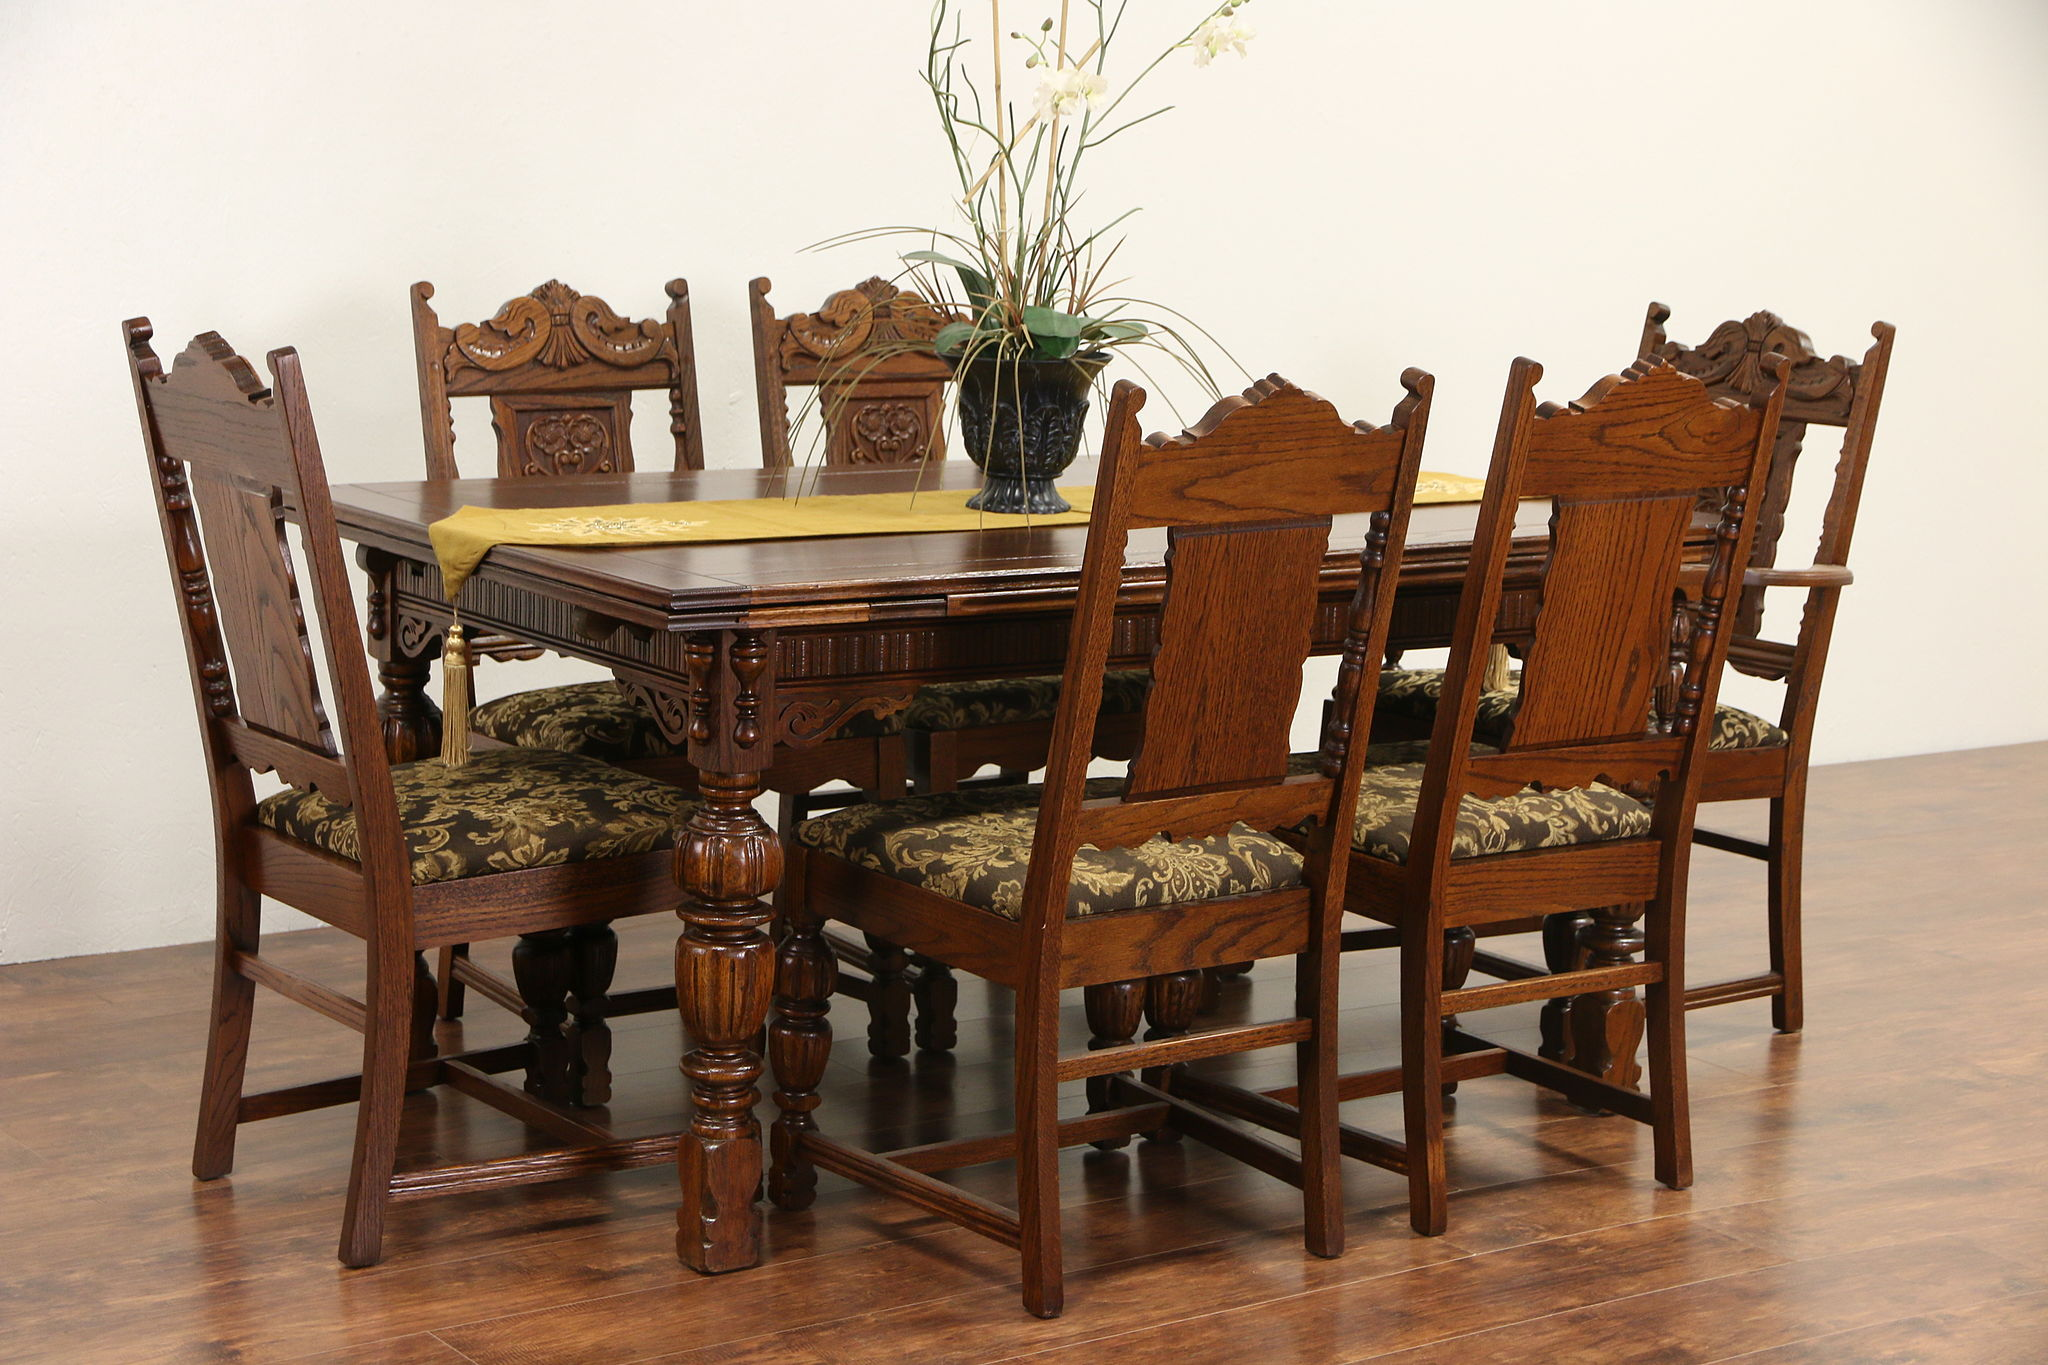 6 chair dining set rocking kits sold english tudor 1920 antique carved oak table chairs harp gallery